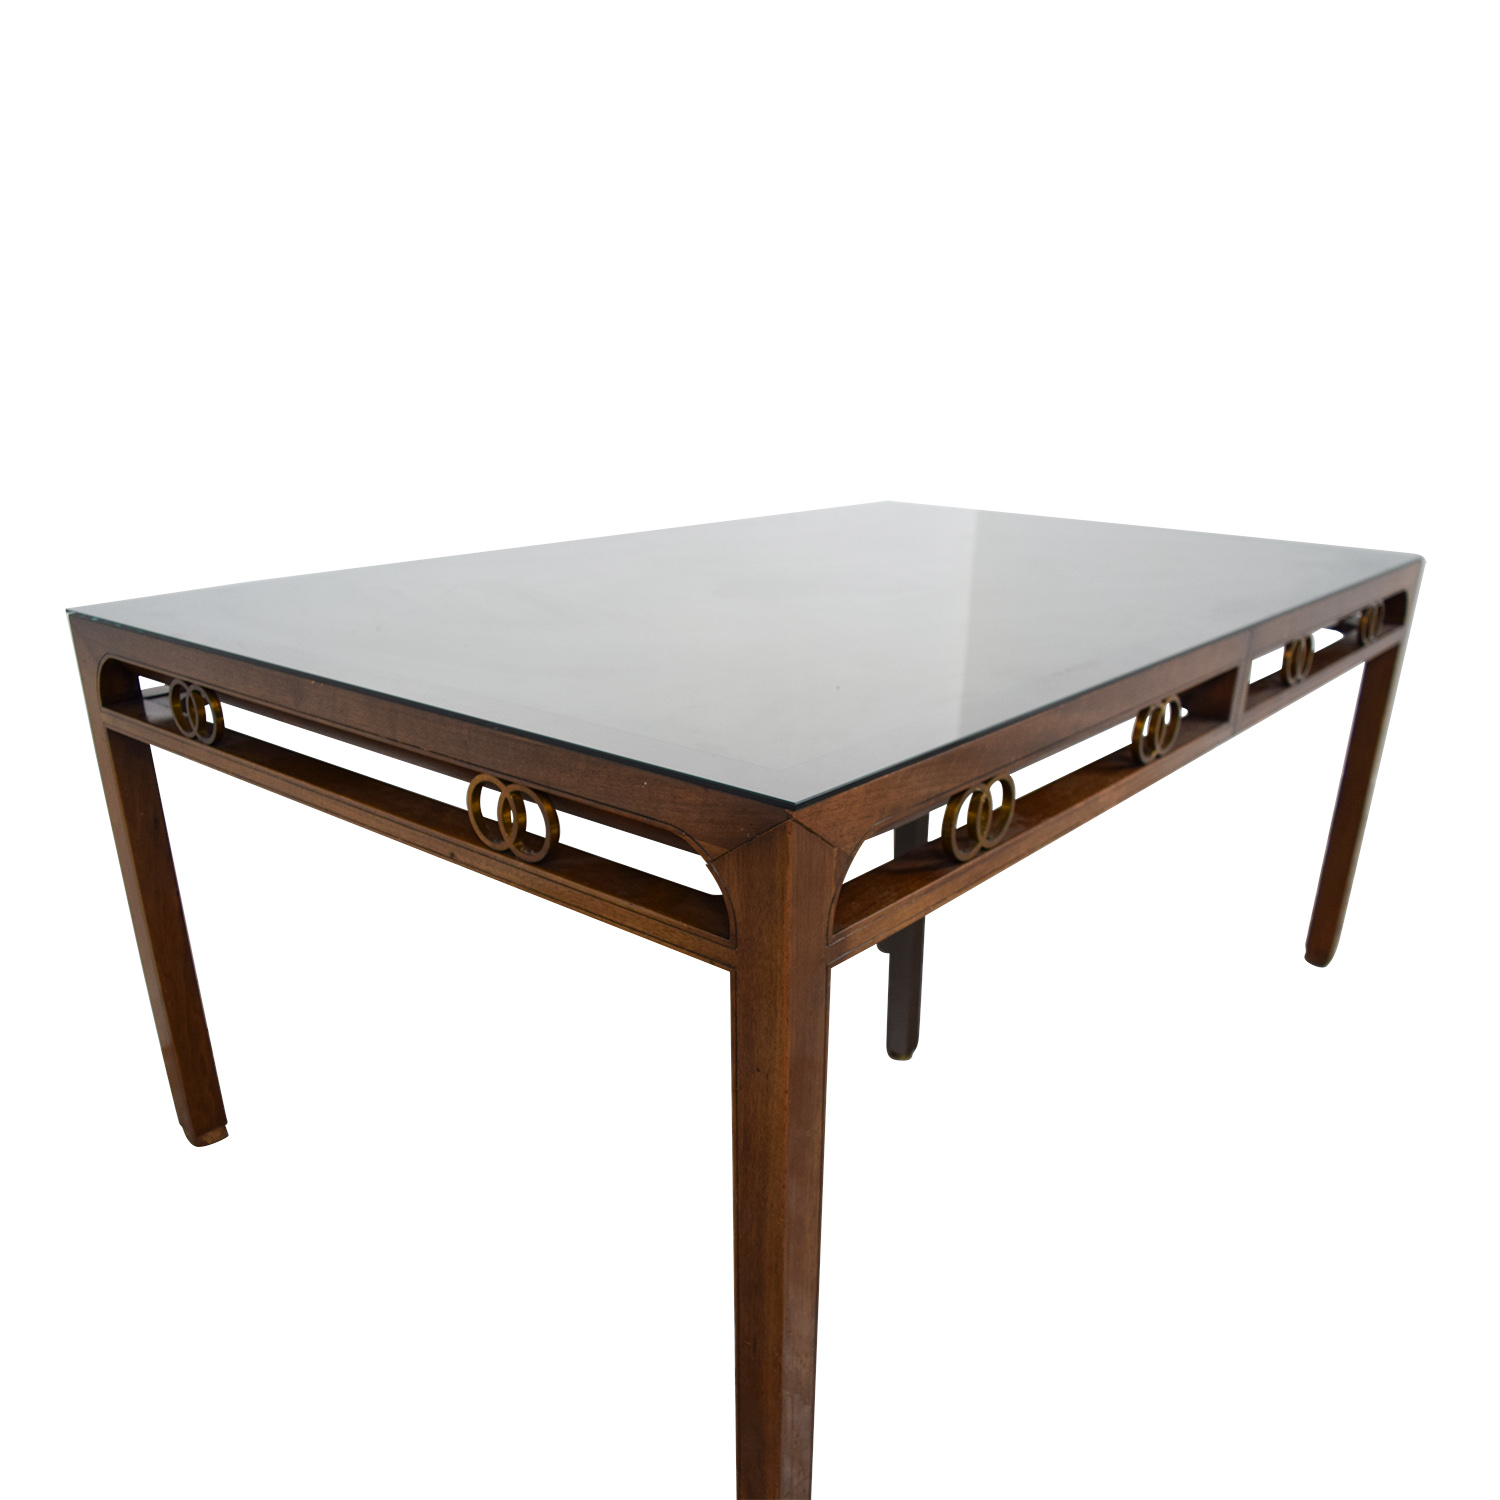 Baker Baker Mid-Century Modern Dining Room Table second hand